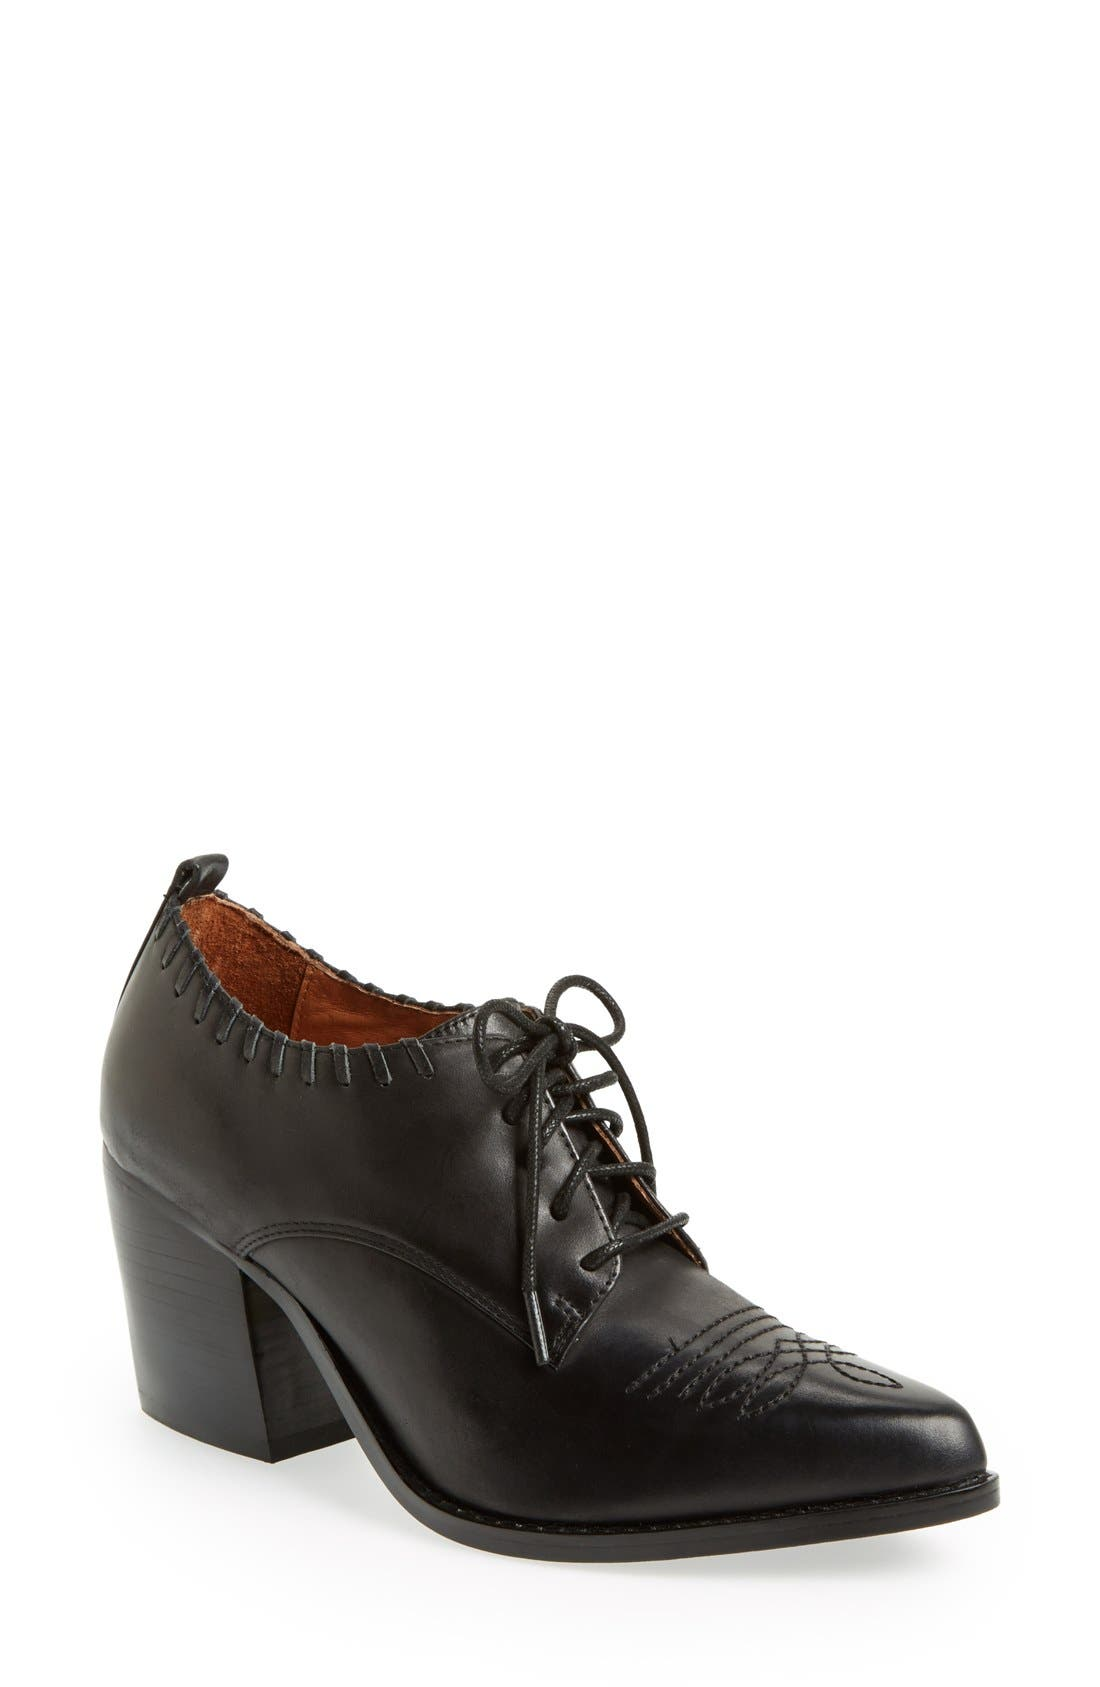 Main Image - Jeffrey Campbell 'Wilkes' Pointy Toe Bootie (Women)